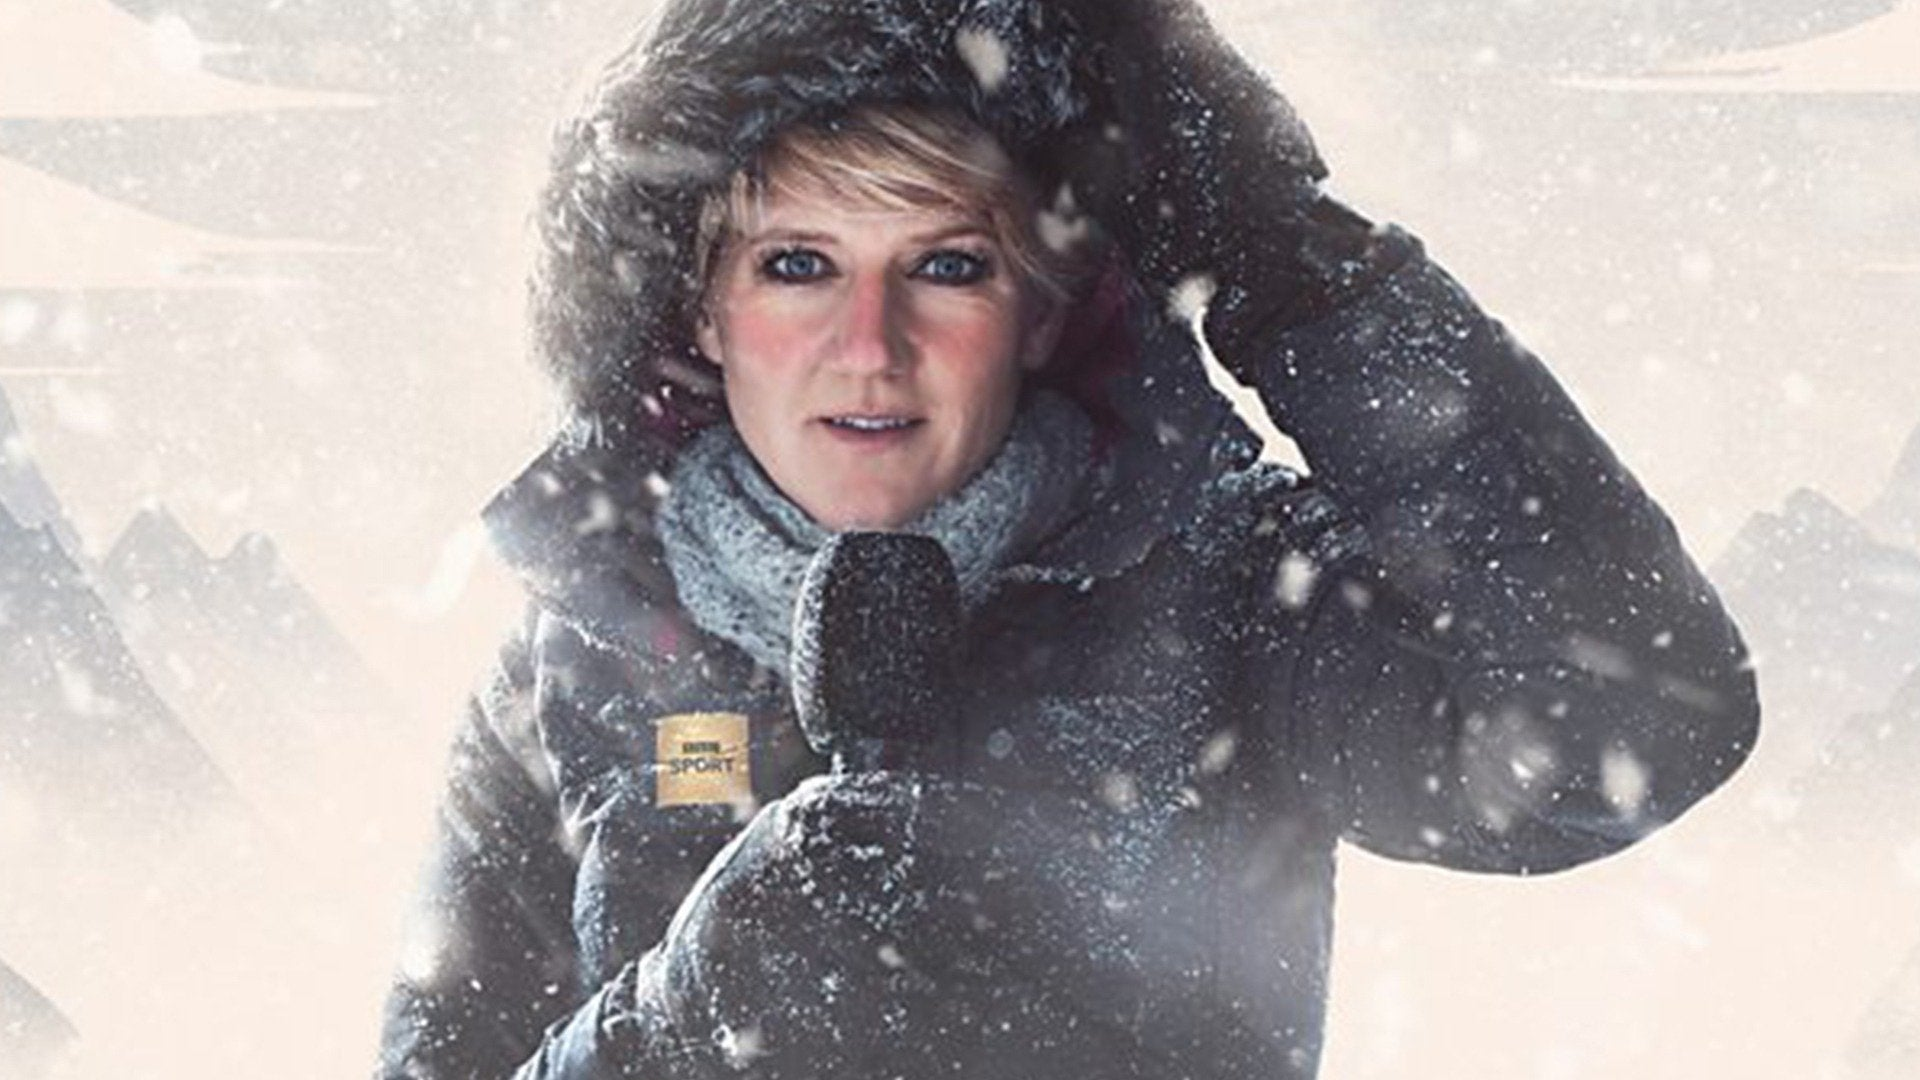 Clare Balding's Road to the Winter Games